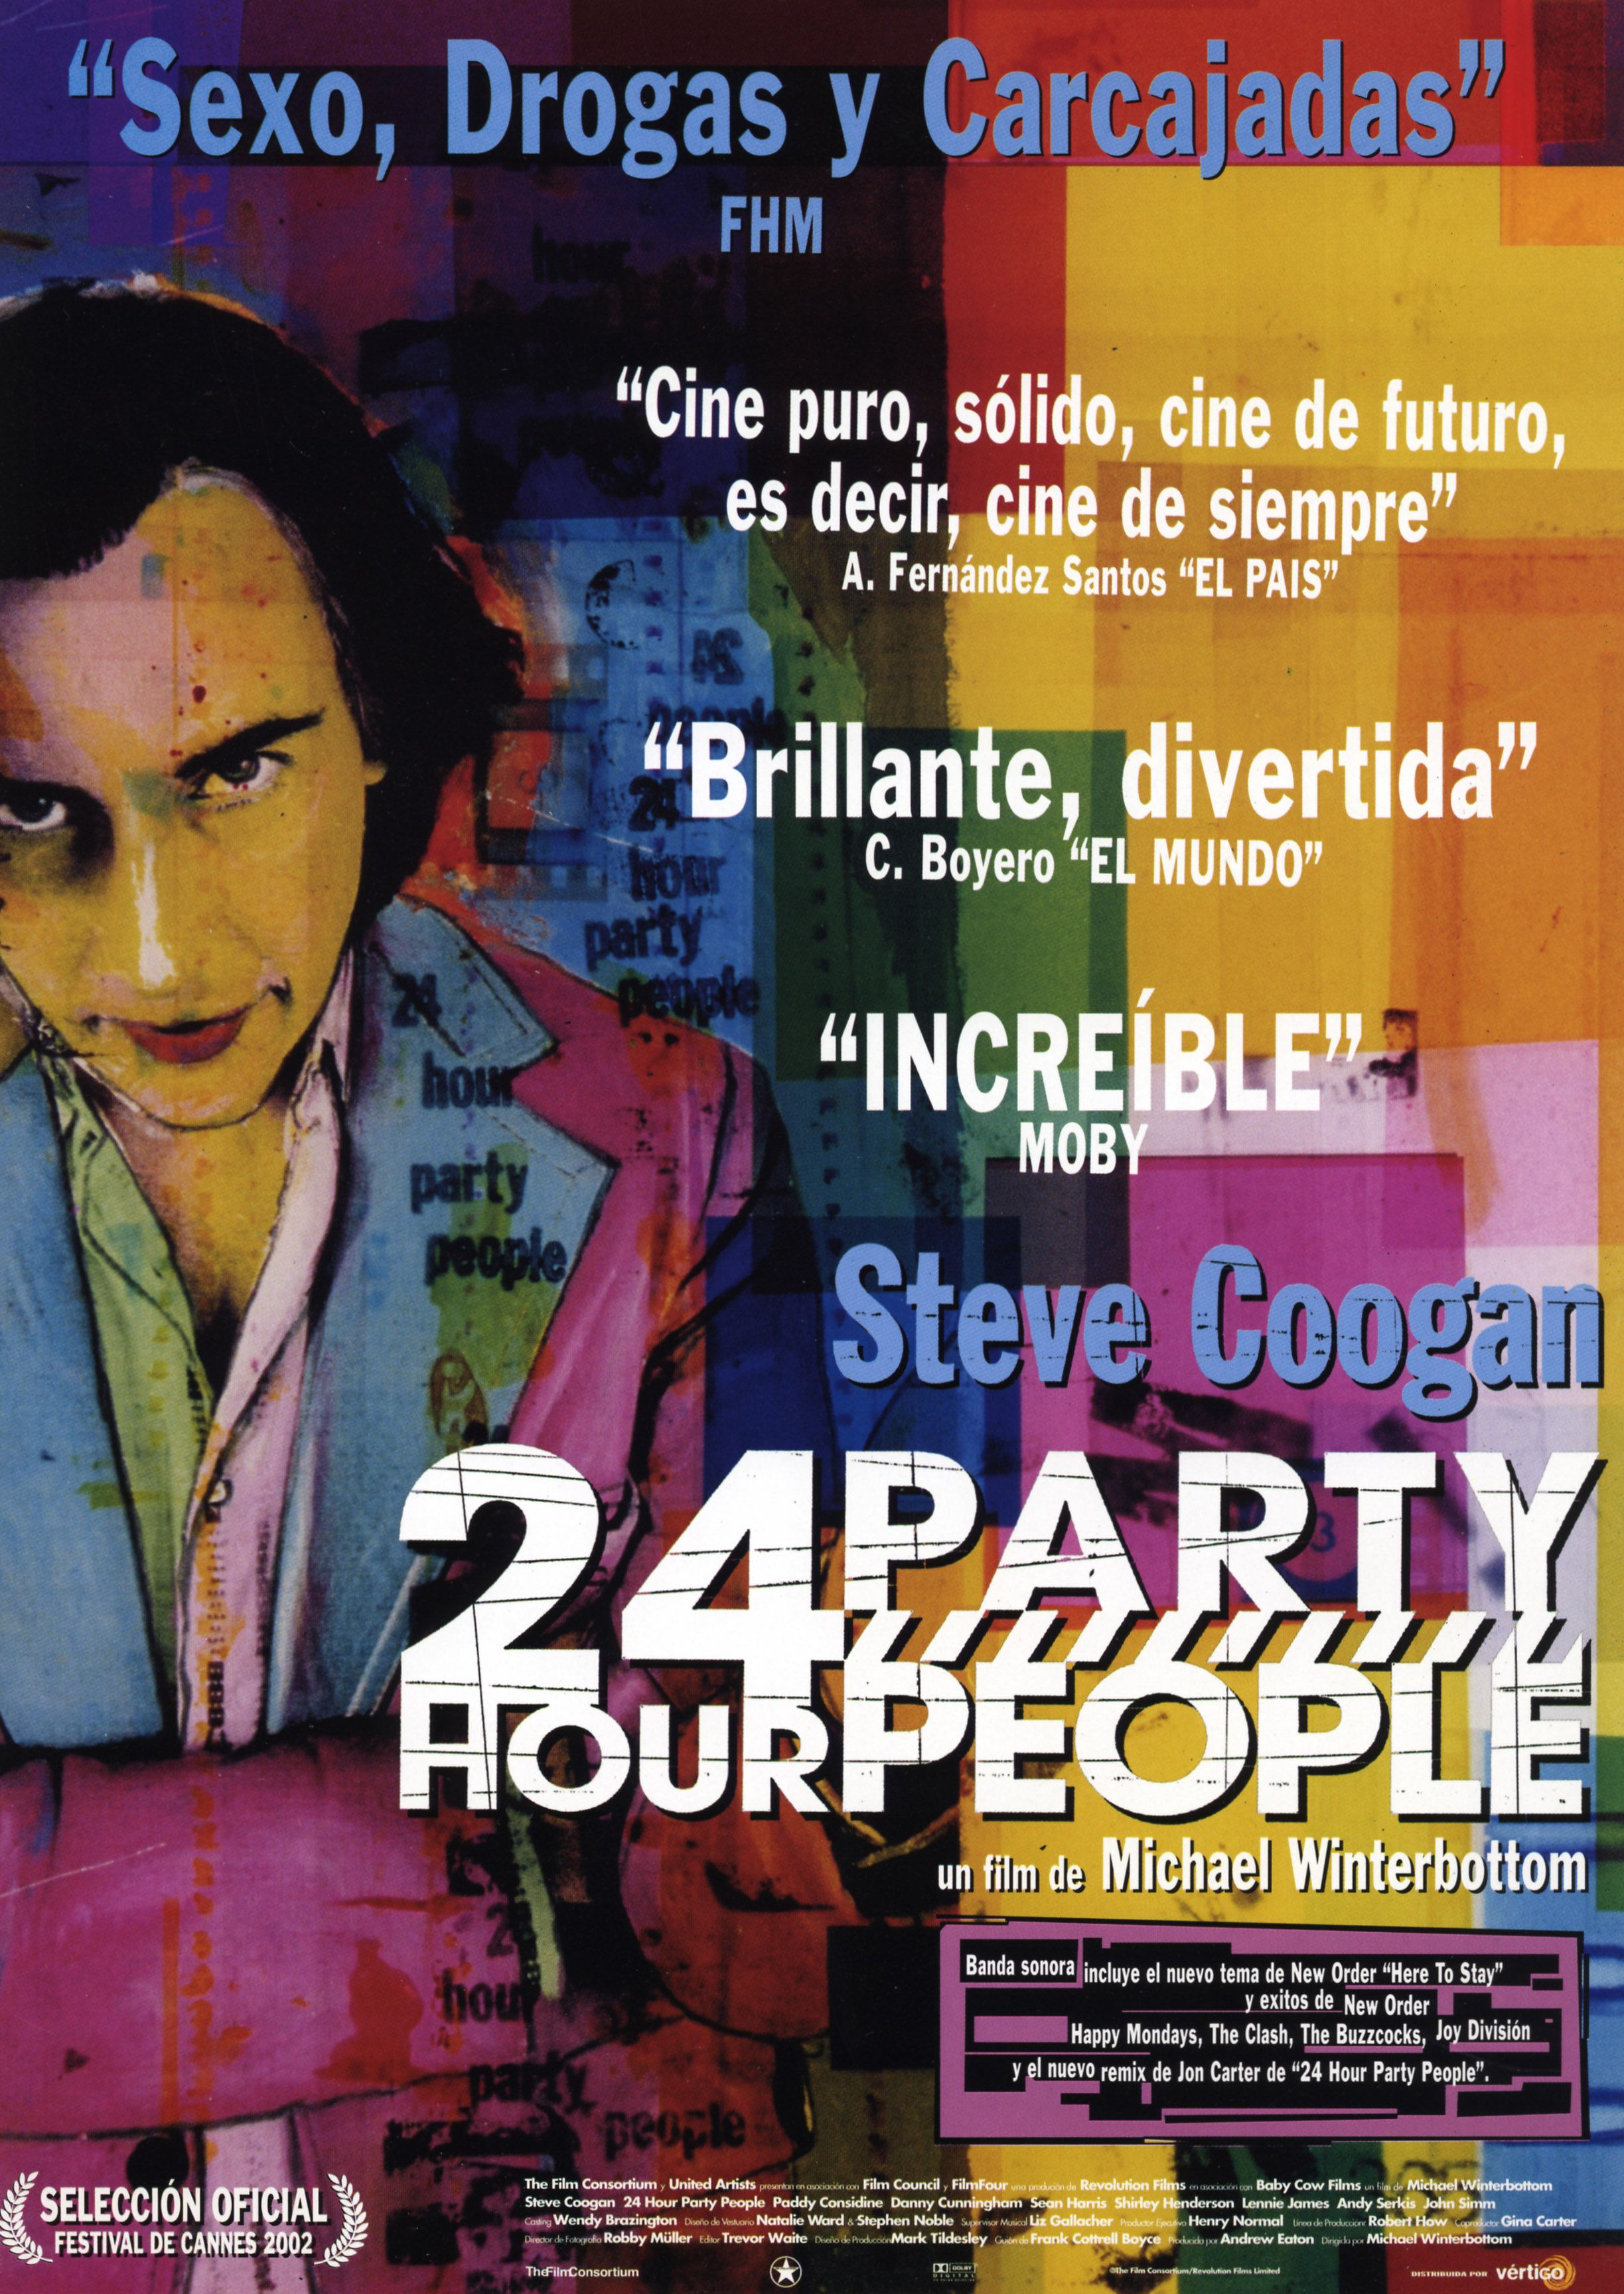 24 Hours Party People (2002) (Michael Winterbottom) A